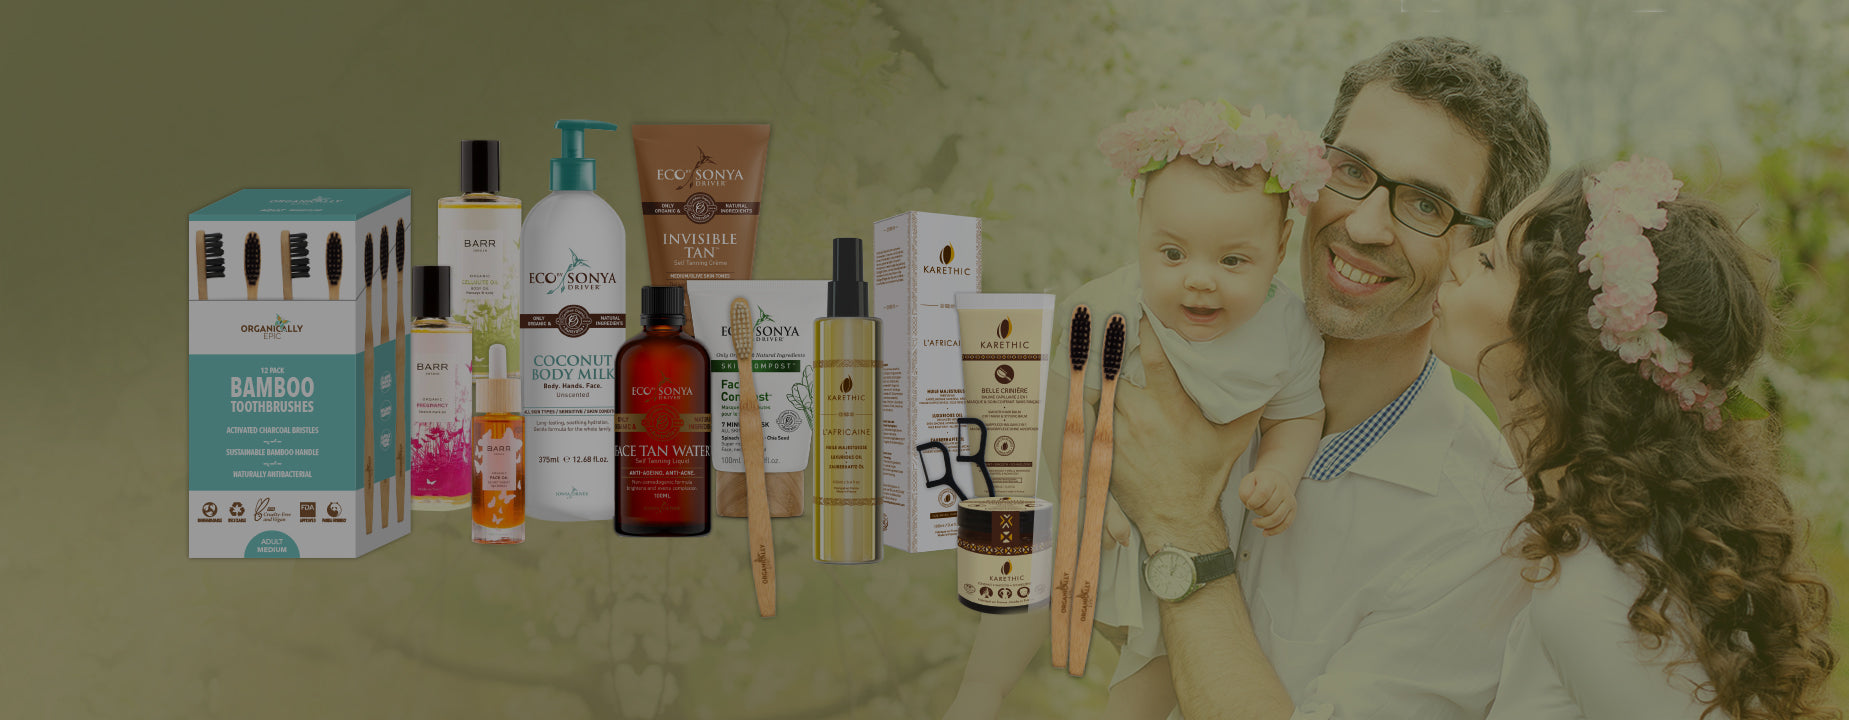 Natural beauty products for your family